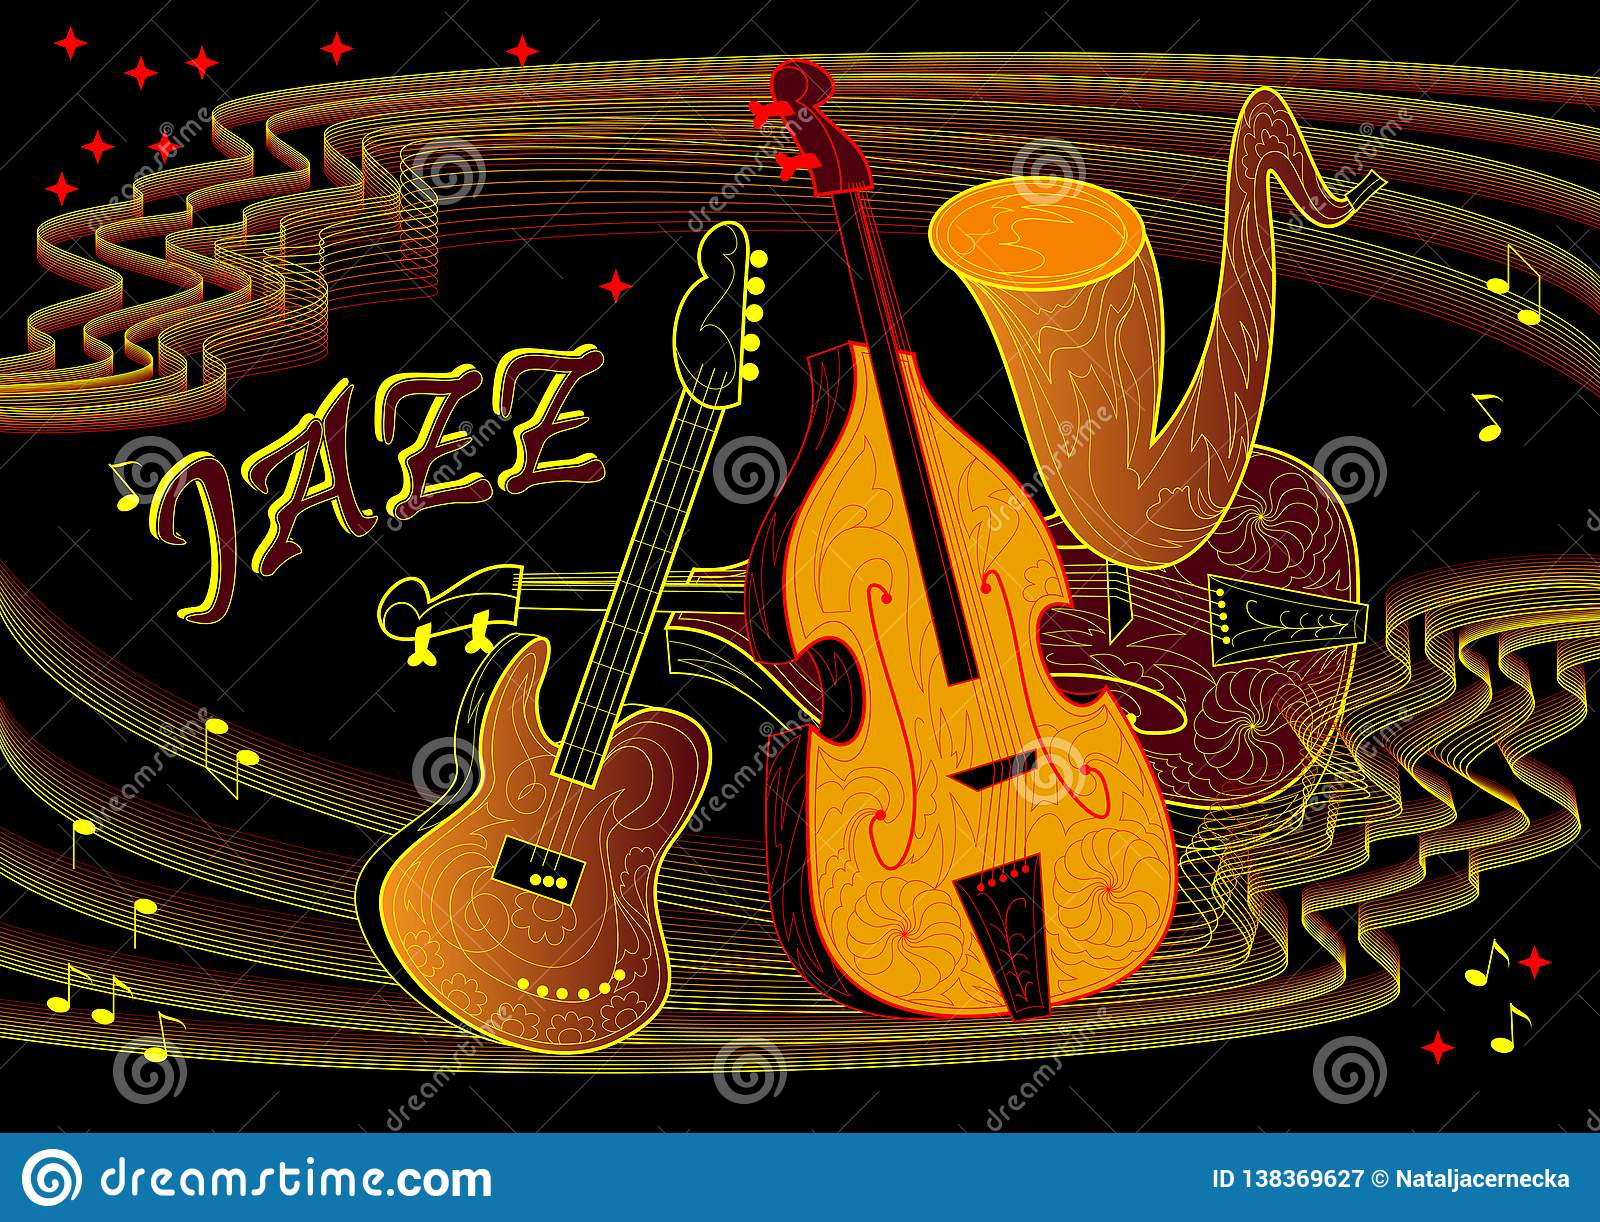 Advertising Of Jazz Concert On Black Background. Poster ...